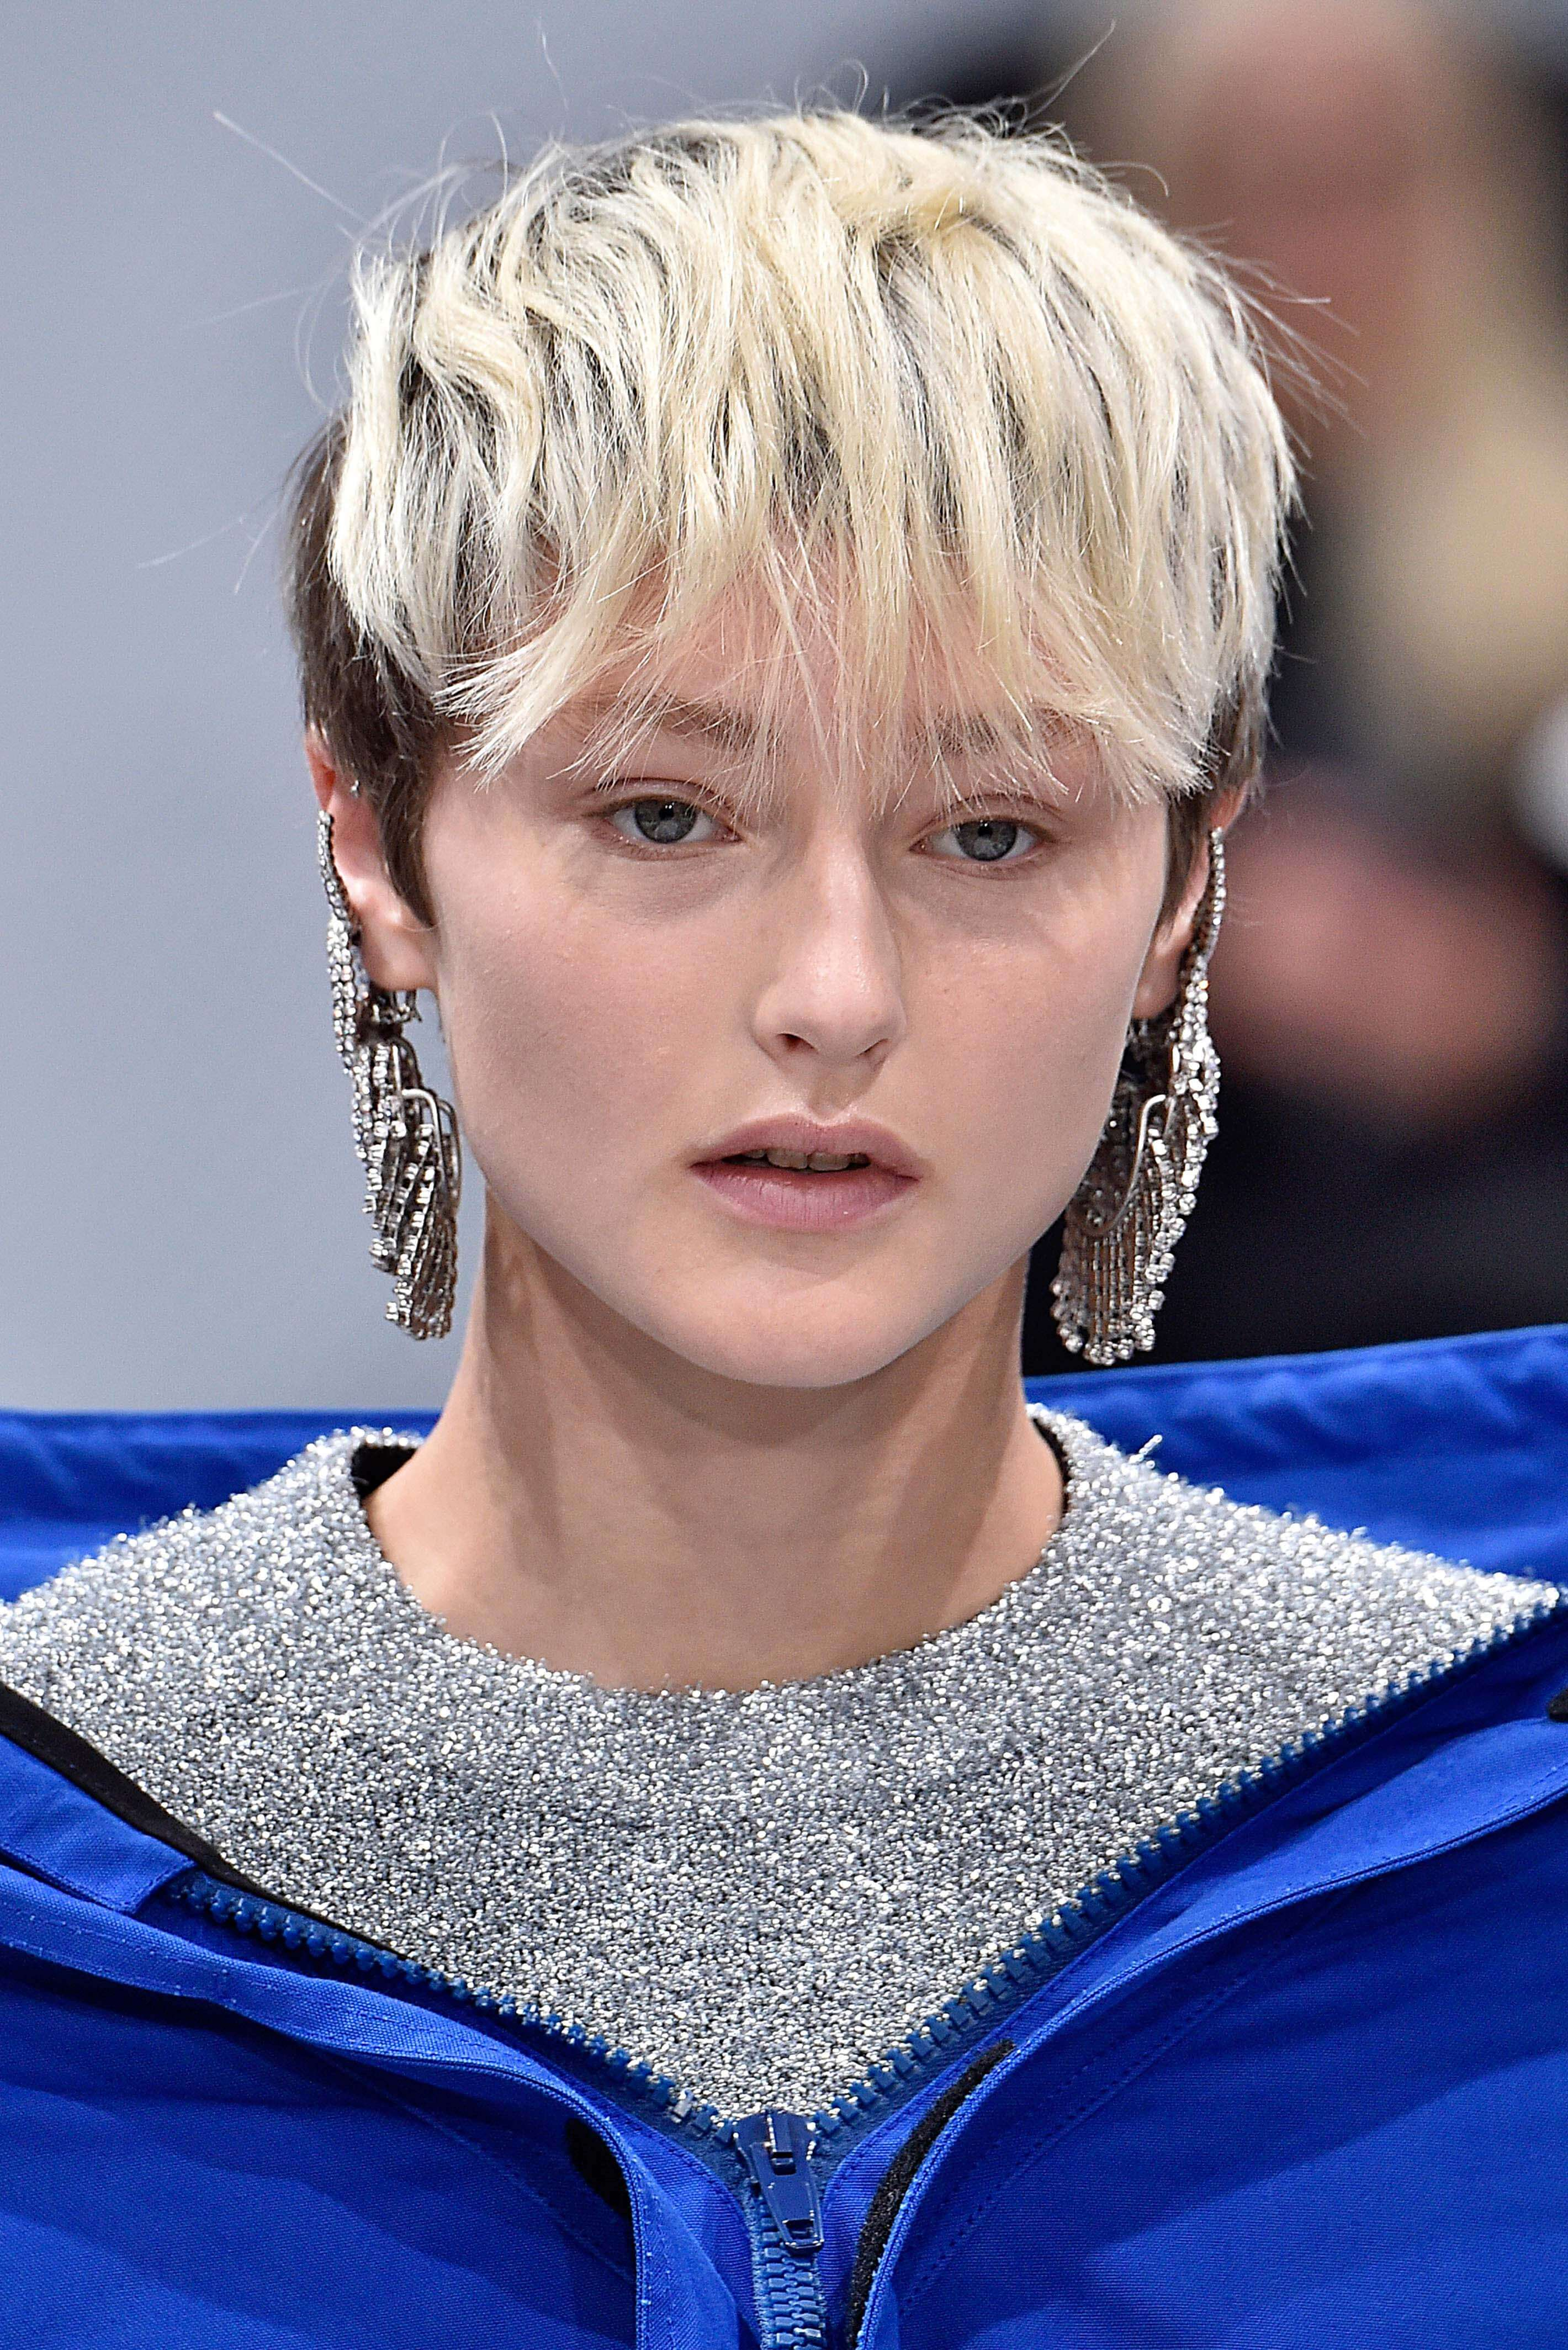 Very short hair styles: woman with a bleached pixie crop and undercut